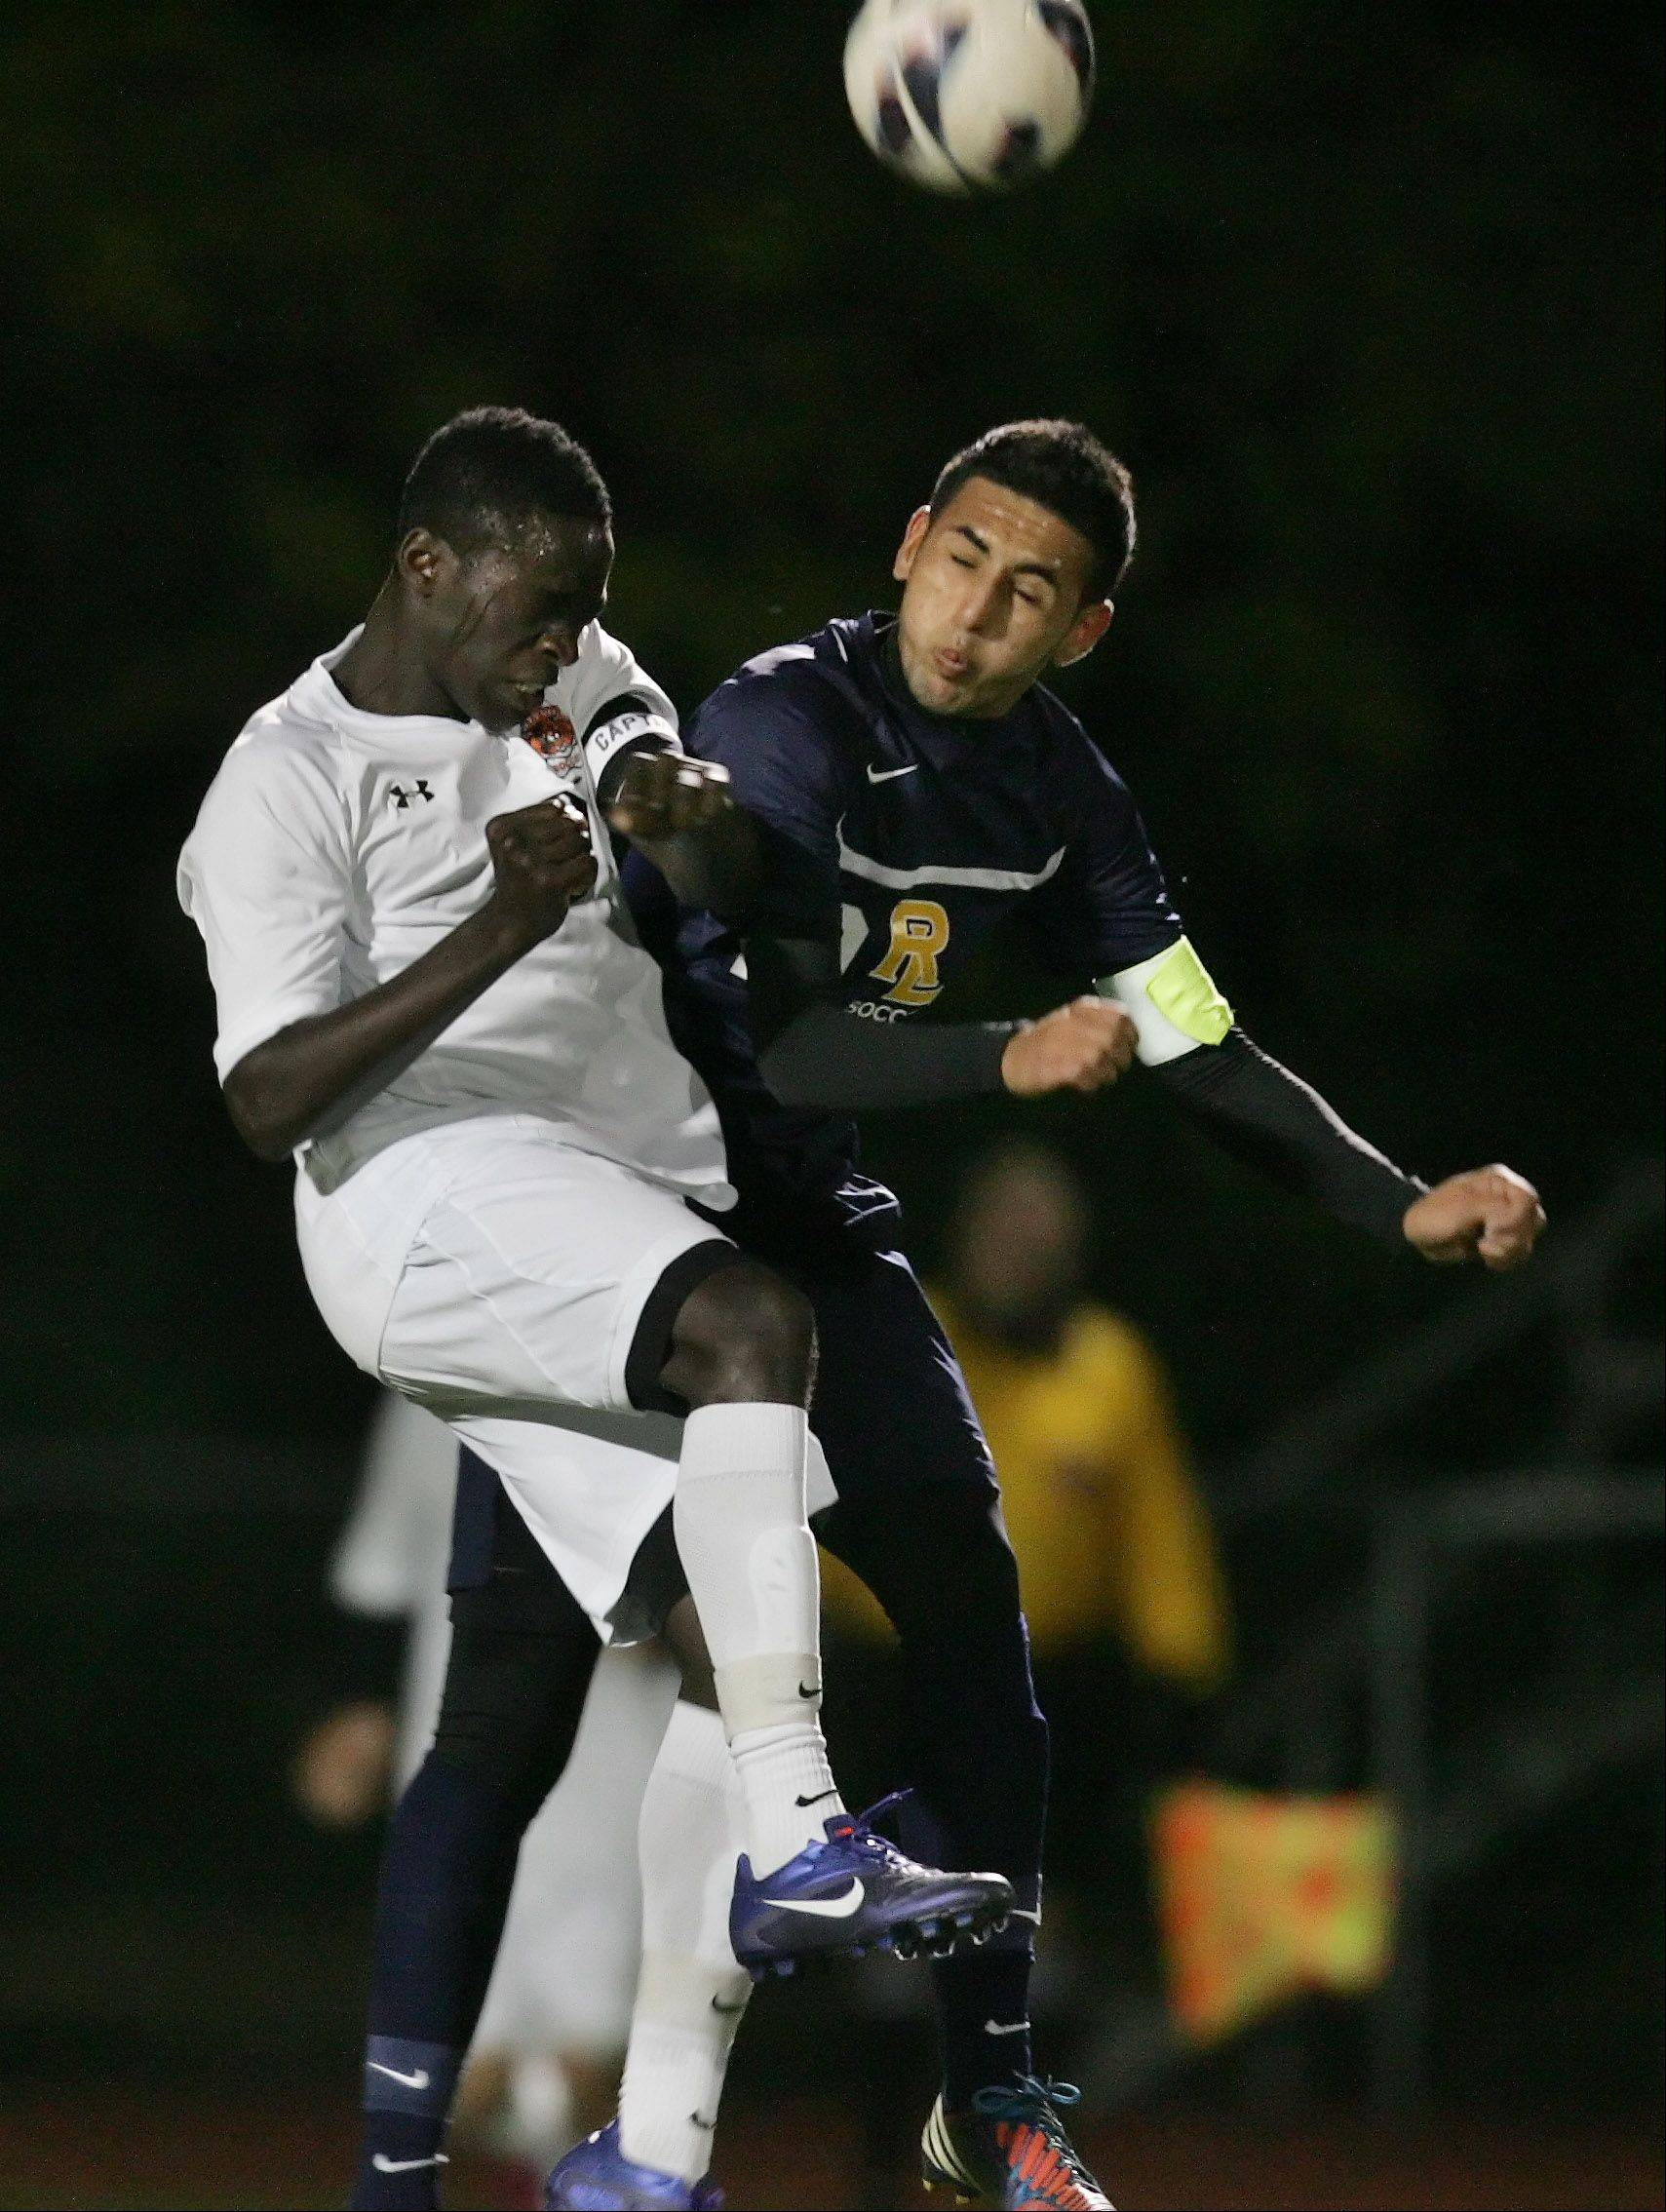 Libertyville's Tomide Owolabi and Round Lake's Lorenzo Cortez battle for a header in the first half of NSC championship play Thursday at Libertyville.